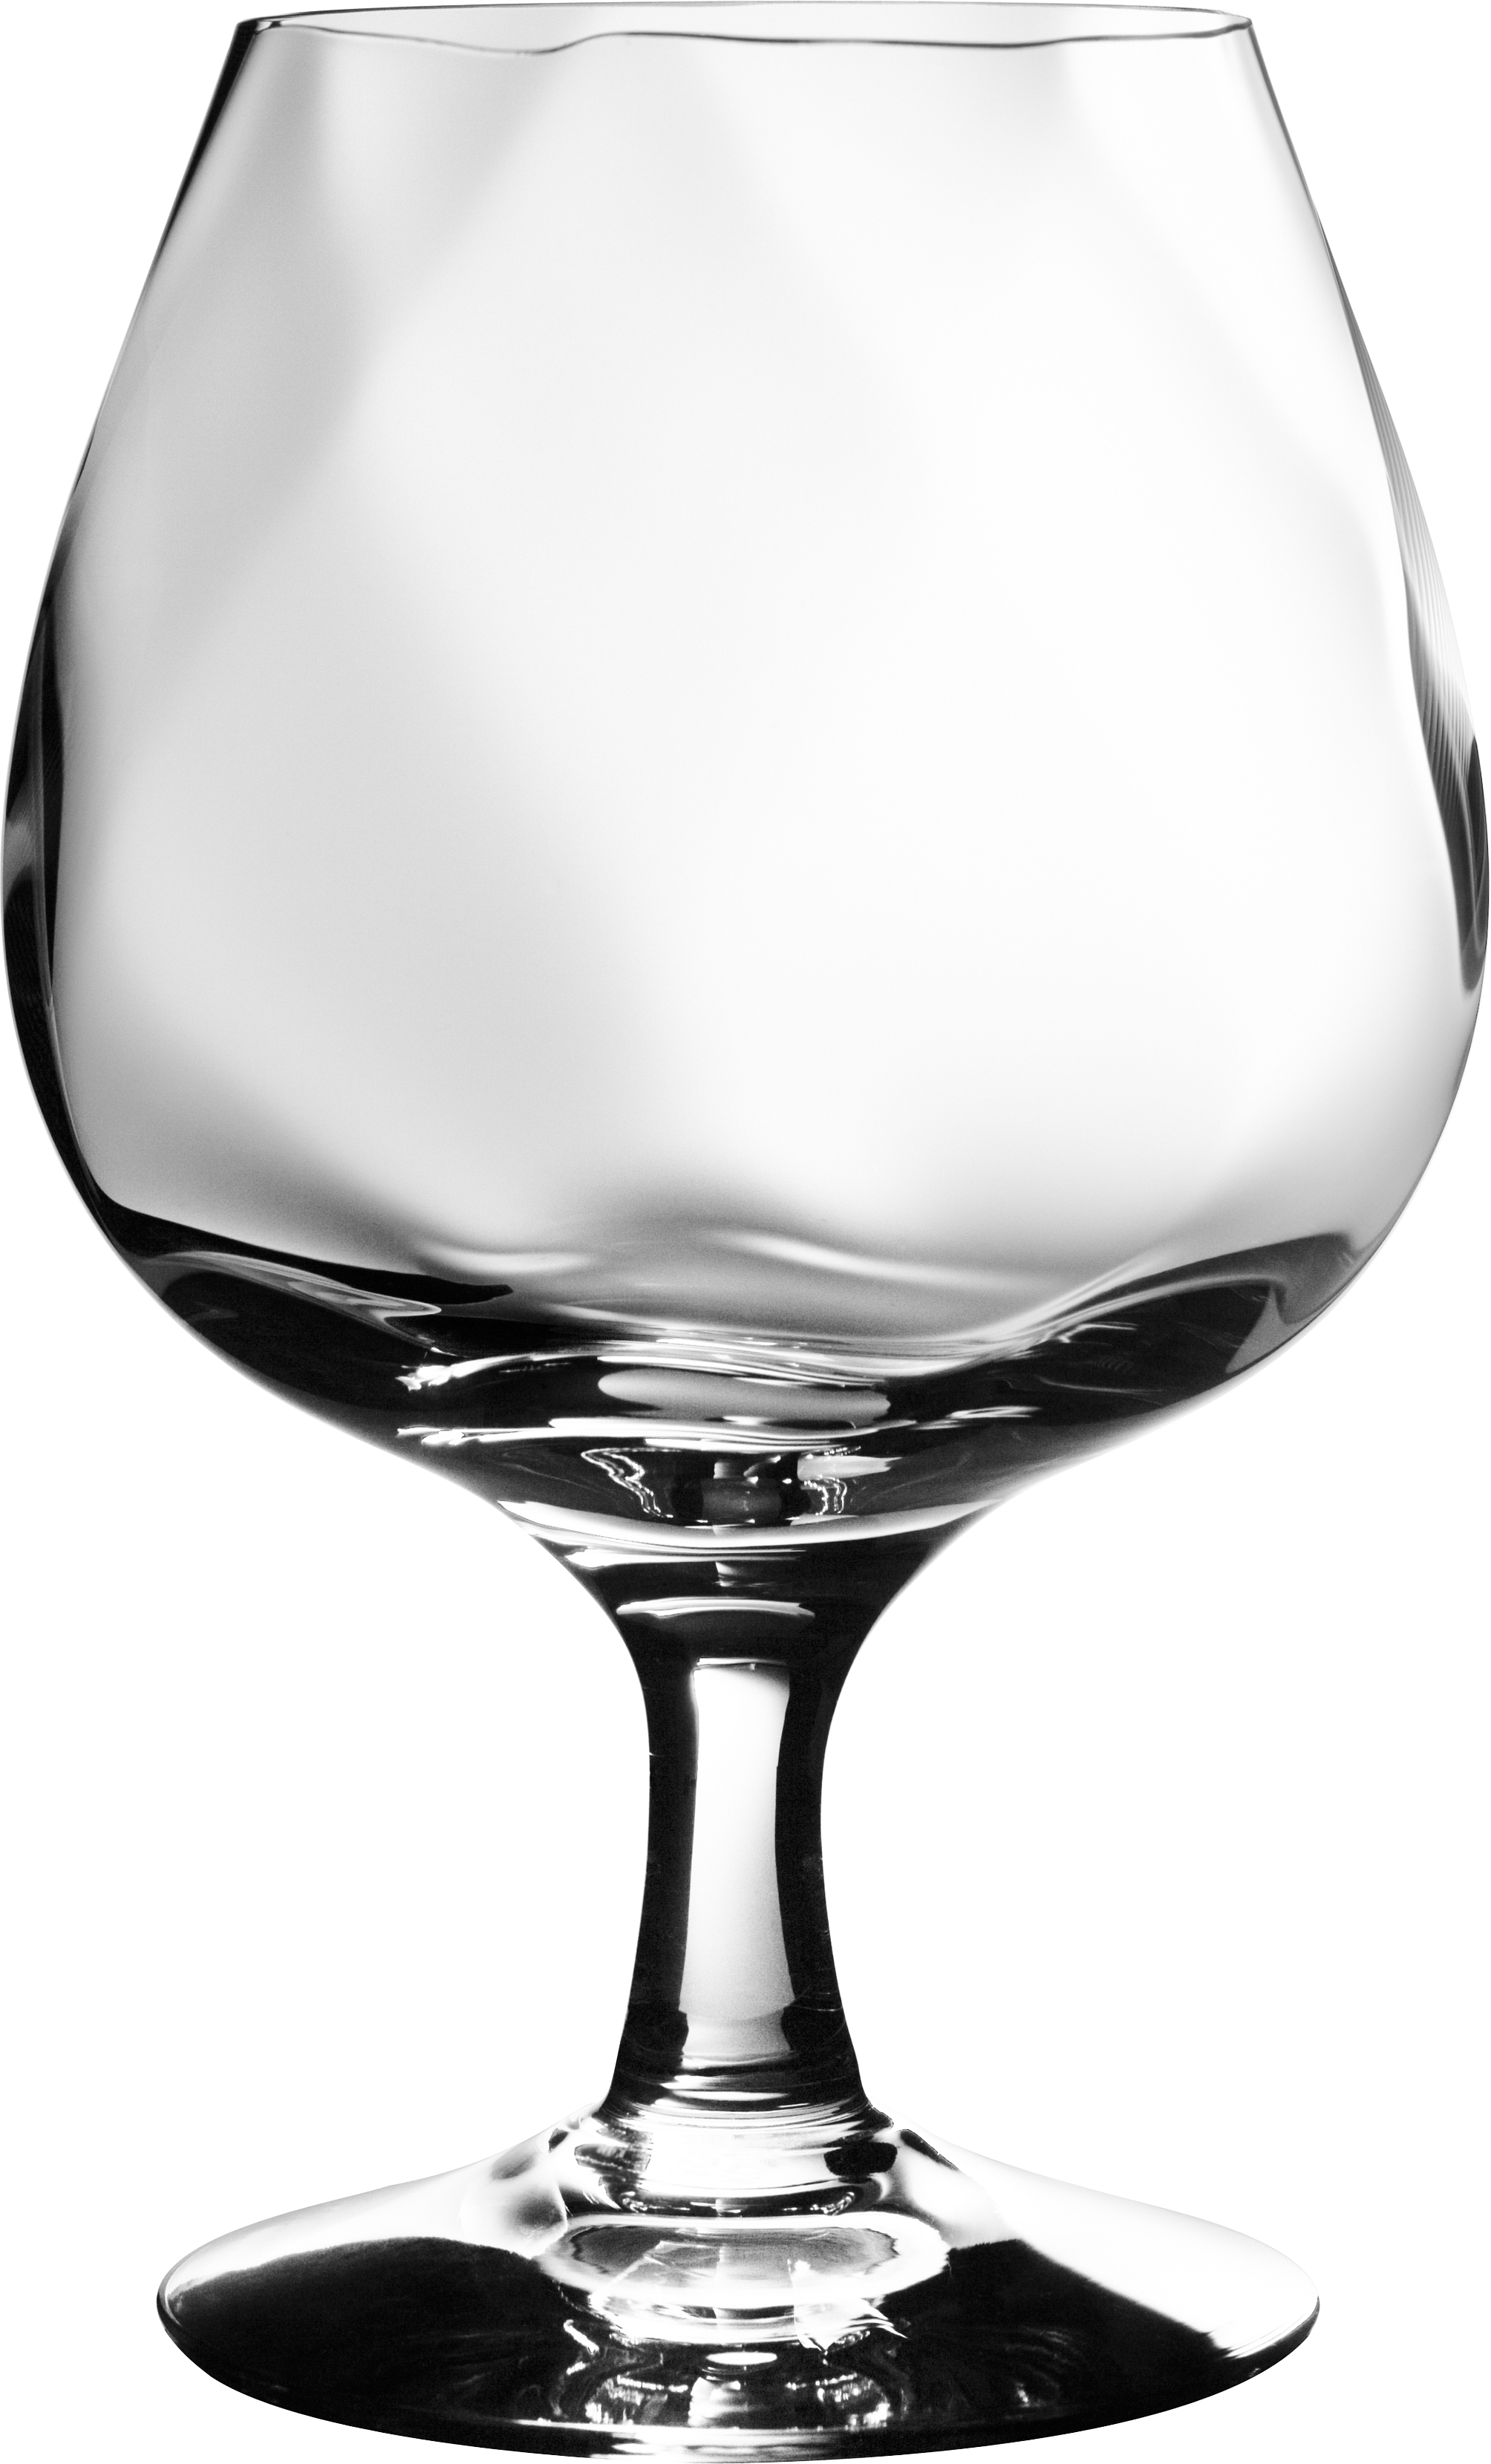 Drinking png transparent image. Glasses clipart empty glass